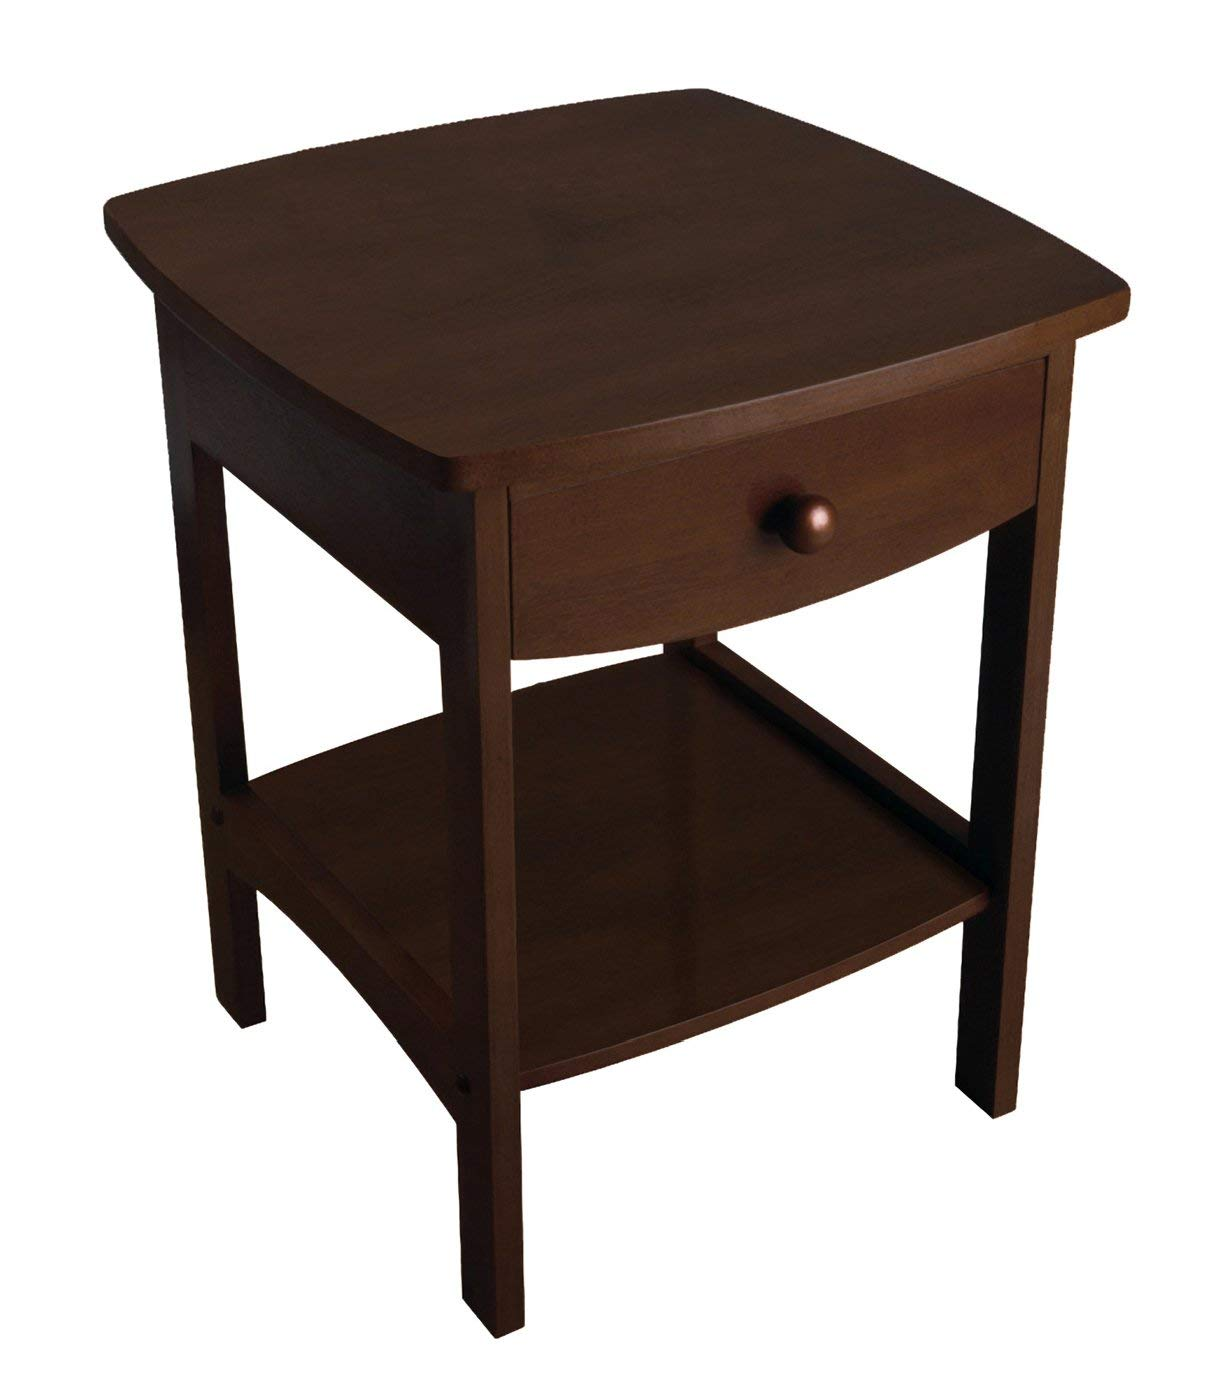 winsome wood claire accent table walnut kitchen nightstand dining velvet chair large wall clocks tablecloth for rectangle square marble coffee drop leaf folding inch round two